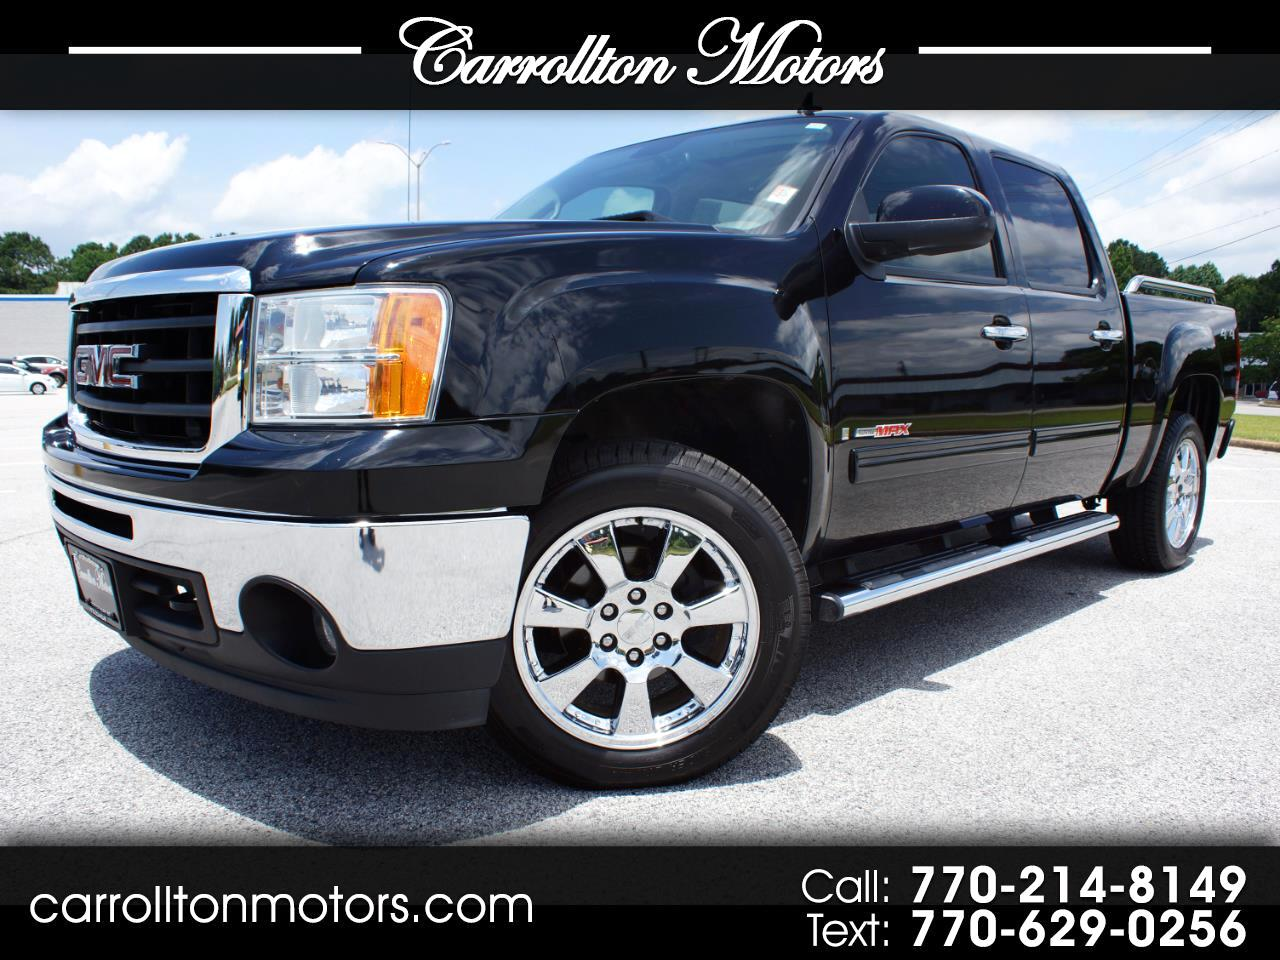 2007 Gmc Sierra For Sale >> Used 2007 Gmc Sierra 1500 Slt Crew Cab 4wd For Sale In